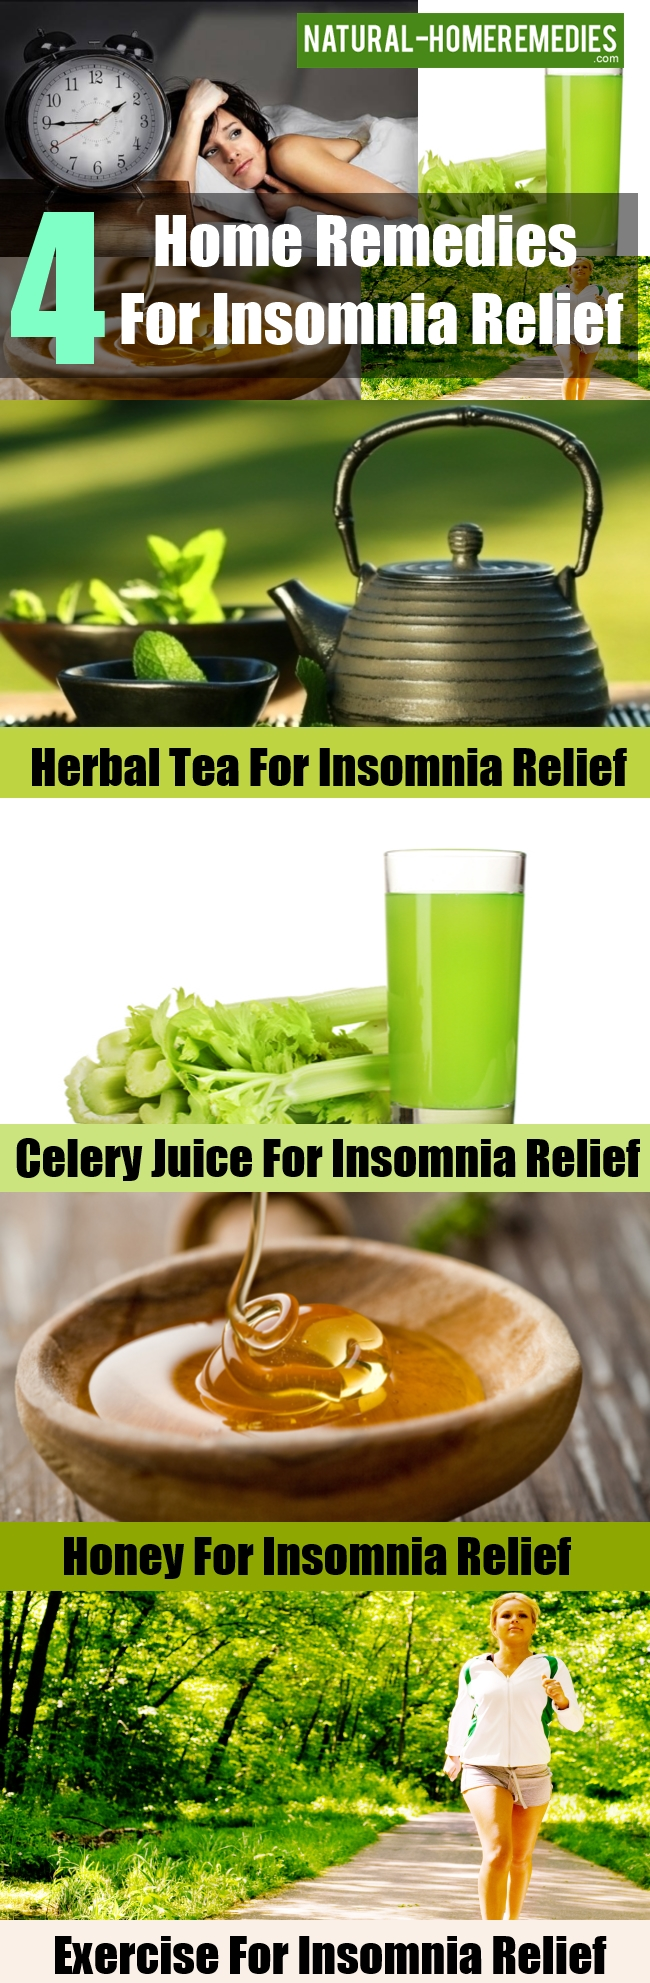 Home Remedies For Insomnia Relief